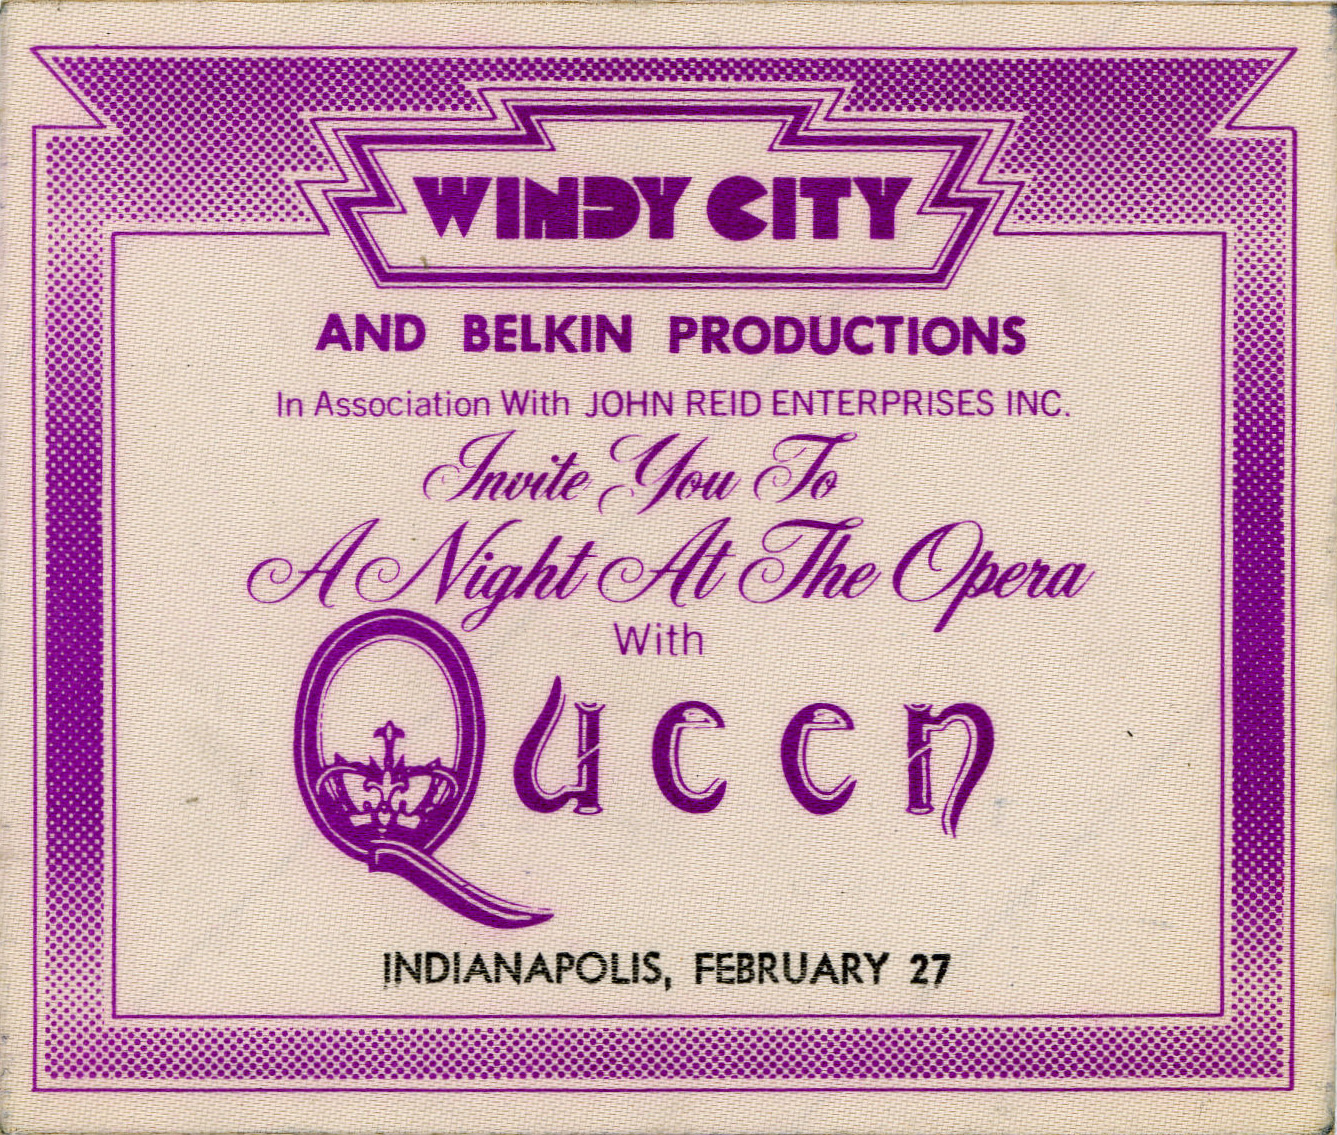 Indianapolis 27.2.1976 backstage pass